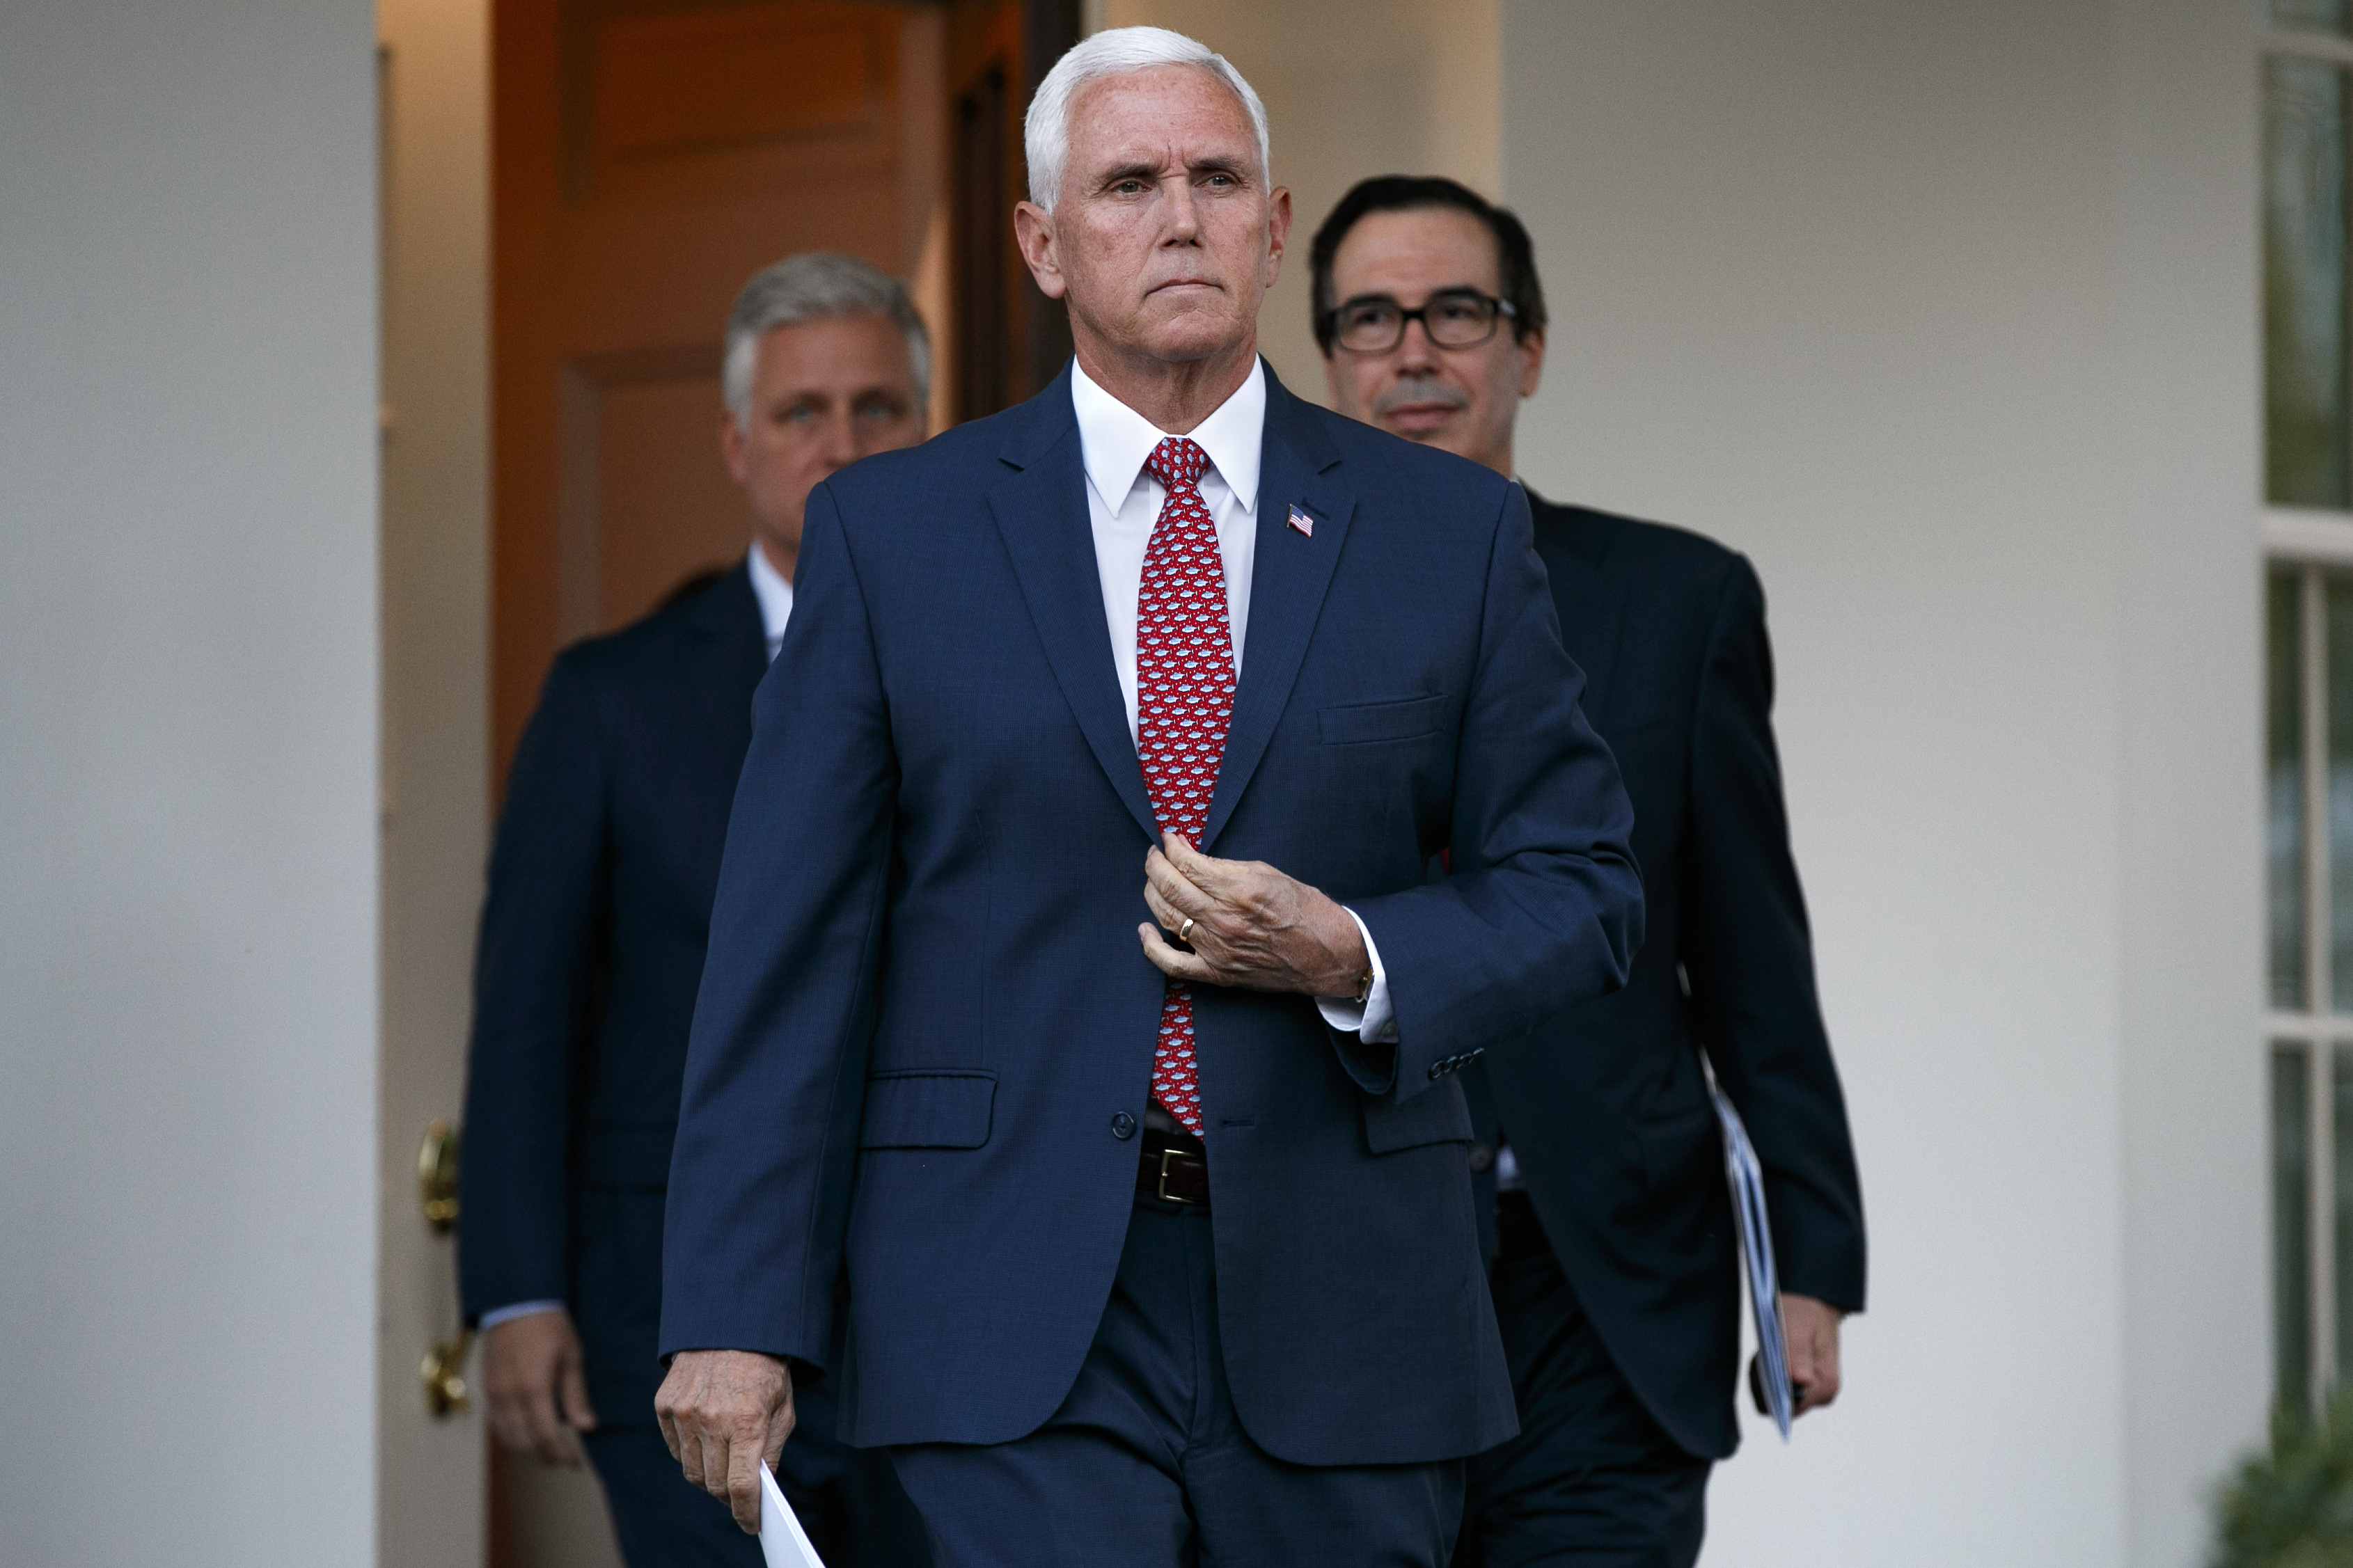 Mike Pence to leave Wednesday for Turkey in bid for cease-fire